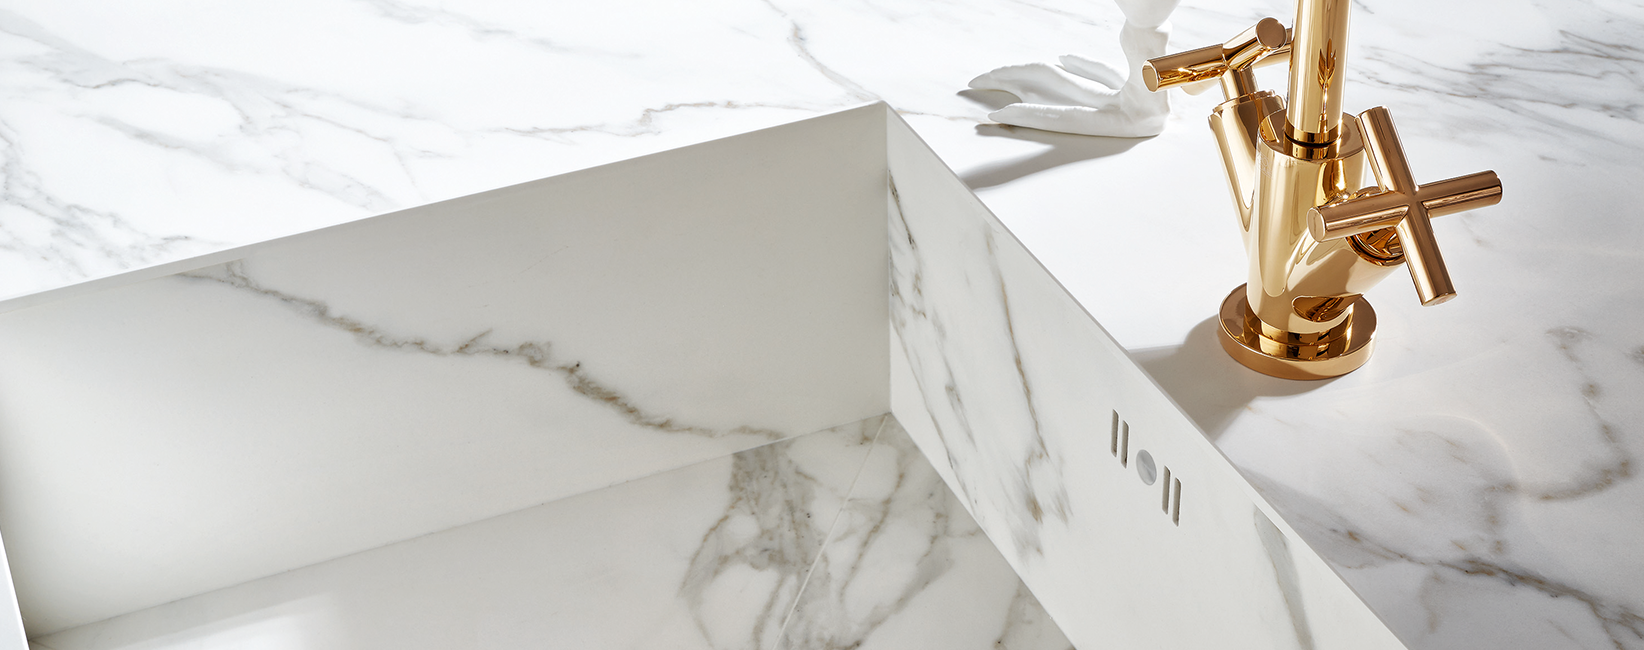 Marble Counter Top and Sink With Bronze Tap